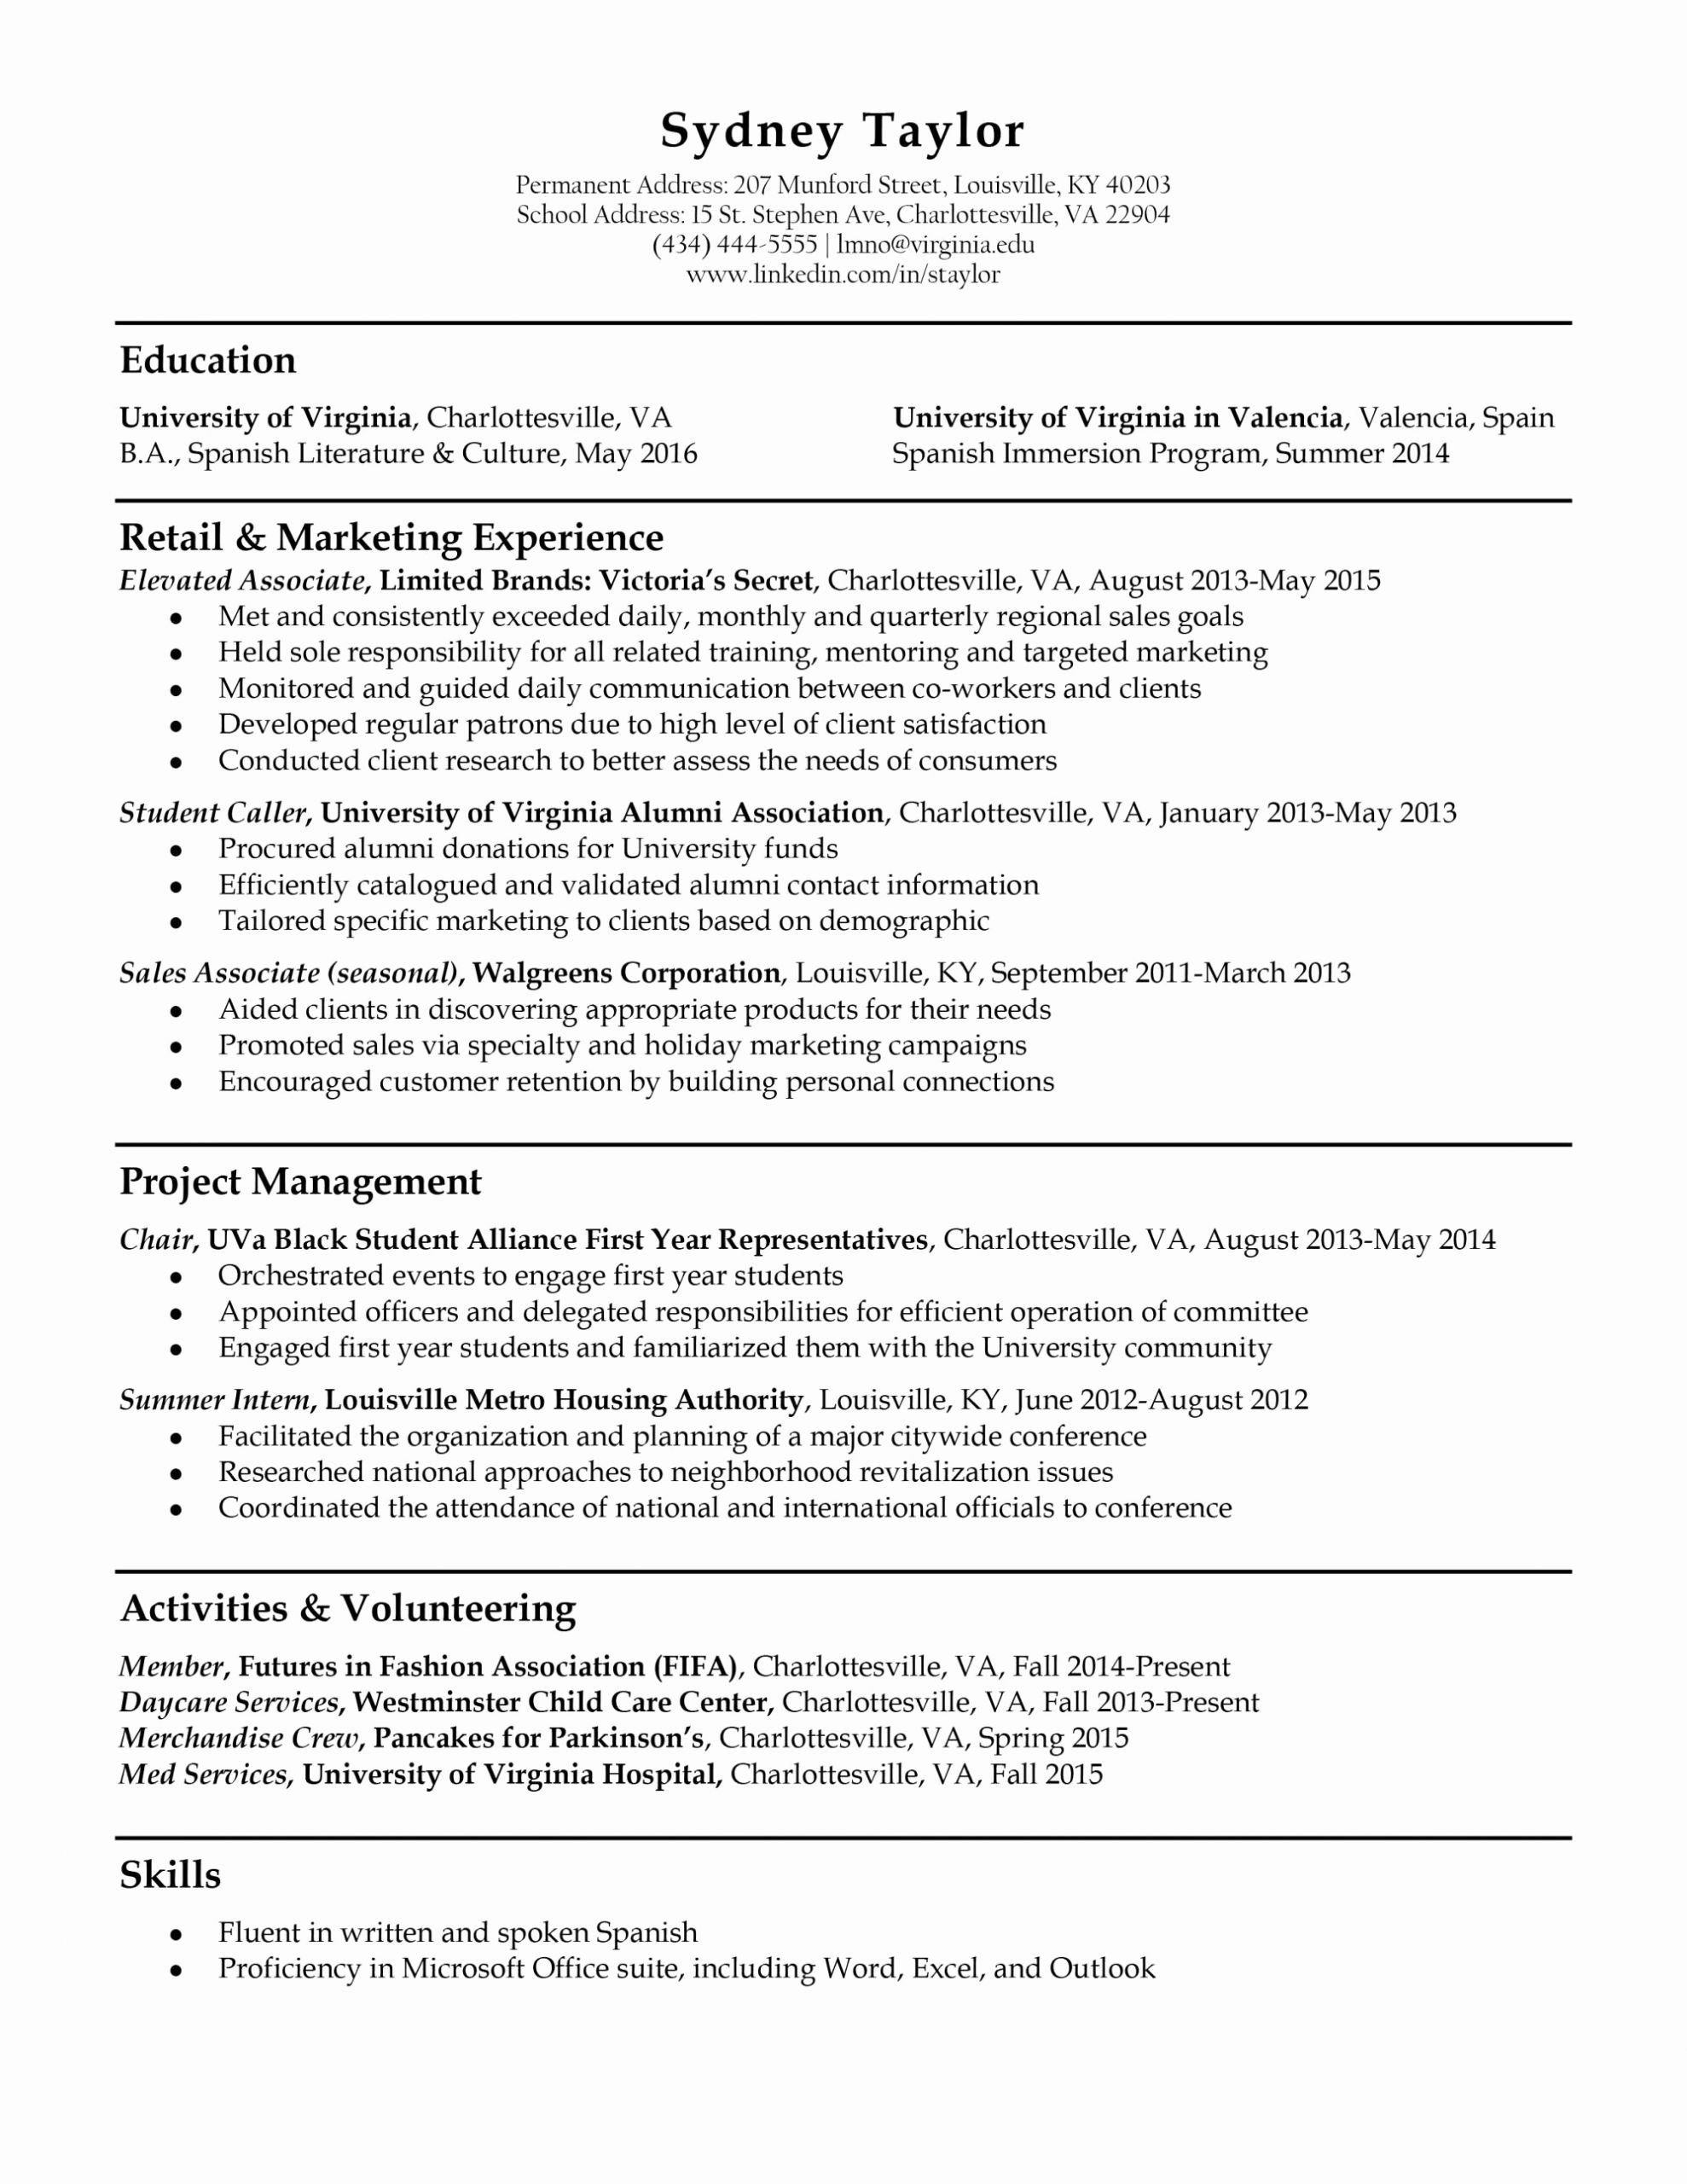 25 Dental Office Manager Resume In 2020 Resume Examples Resume Templates Manager Resume